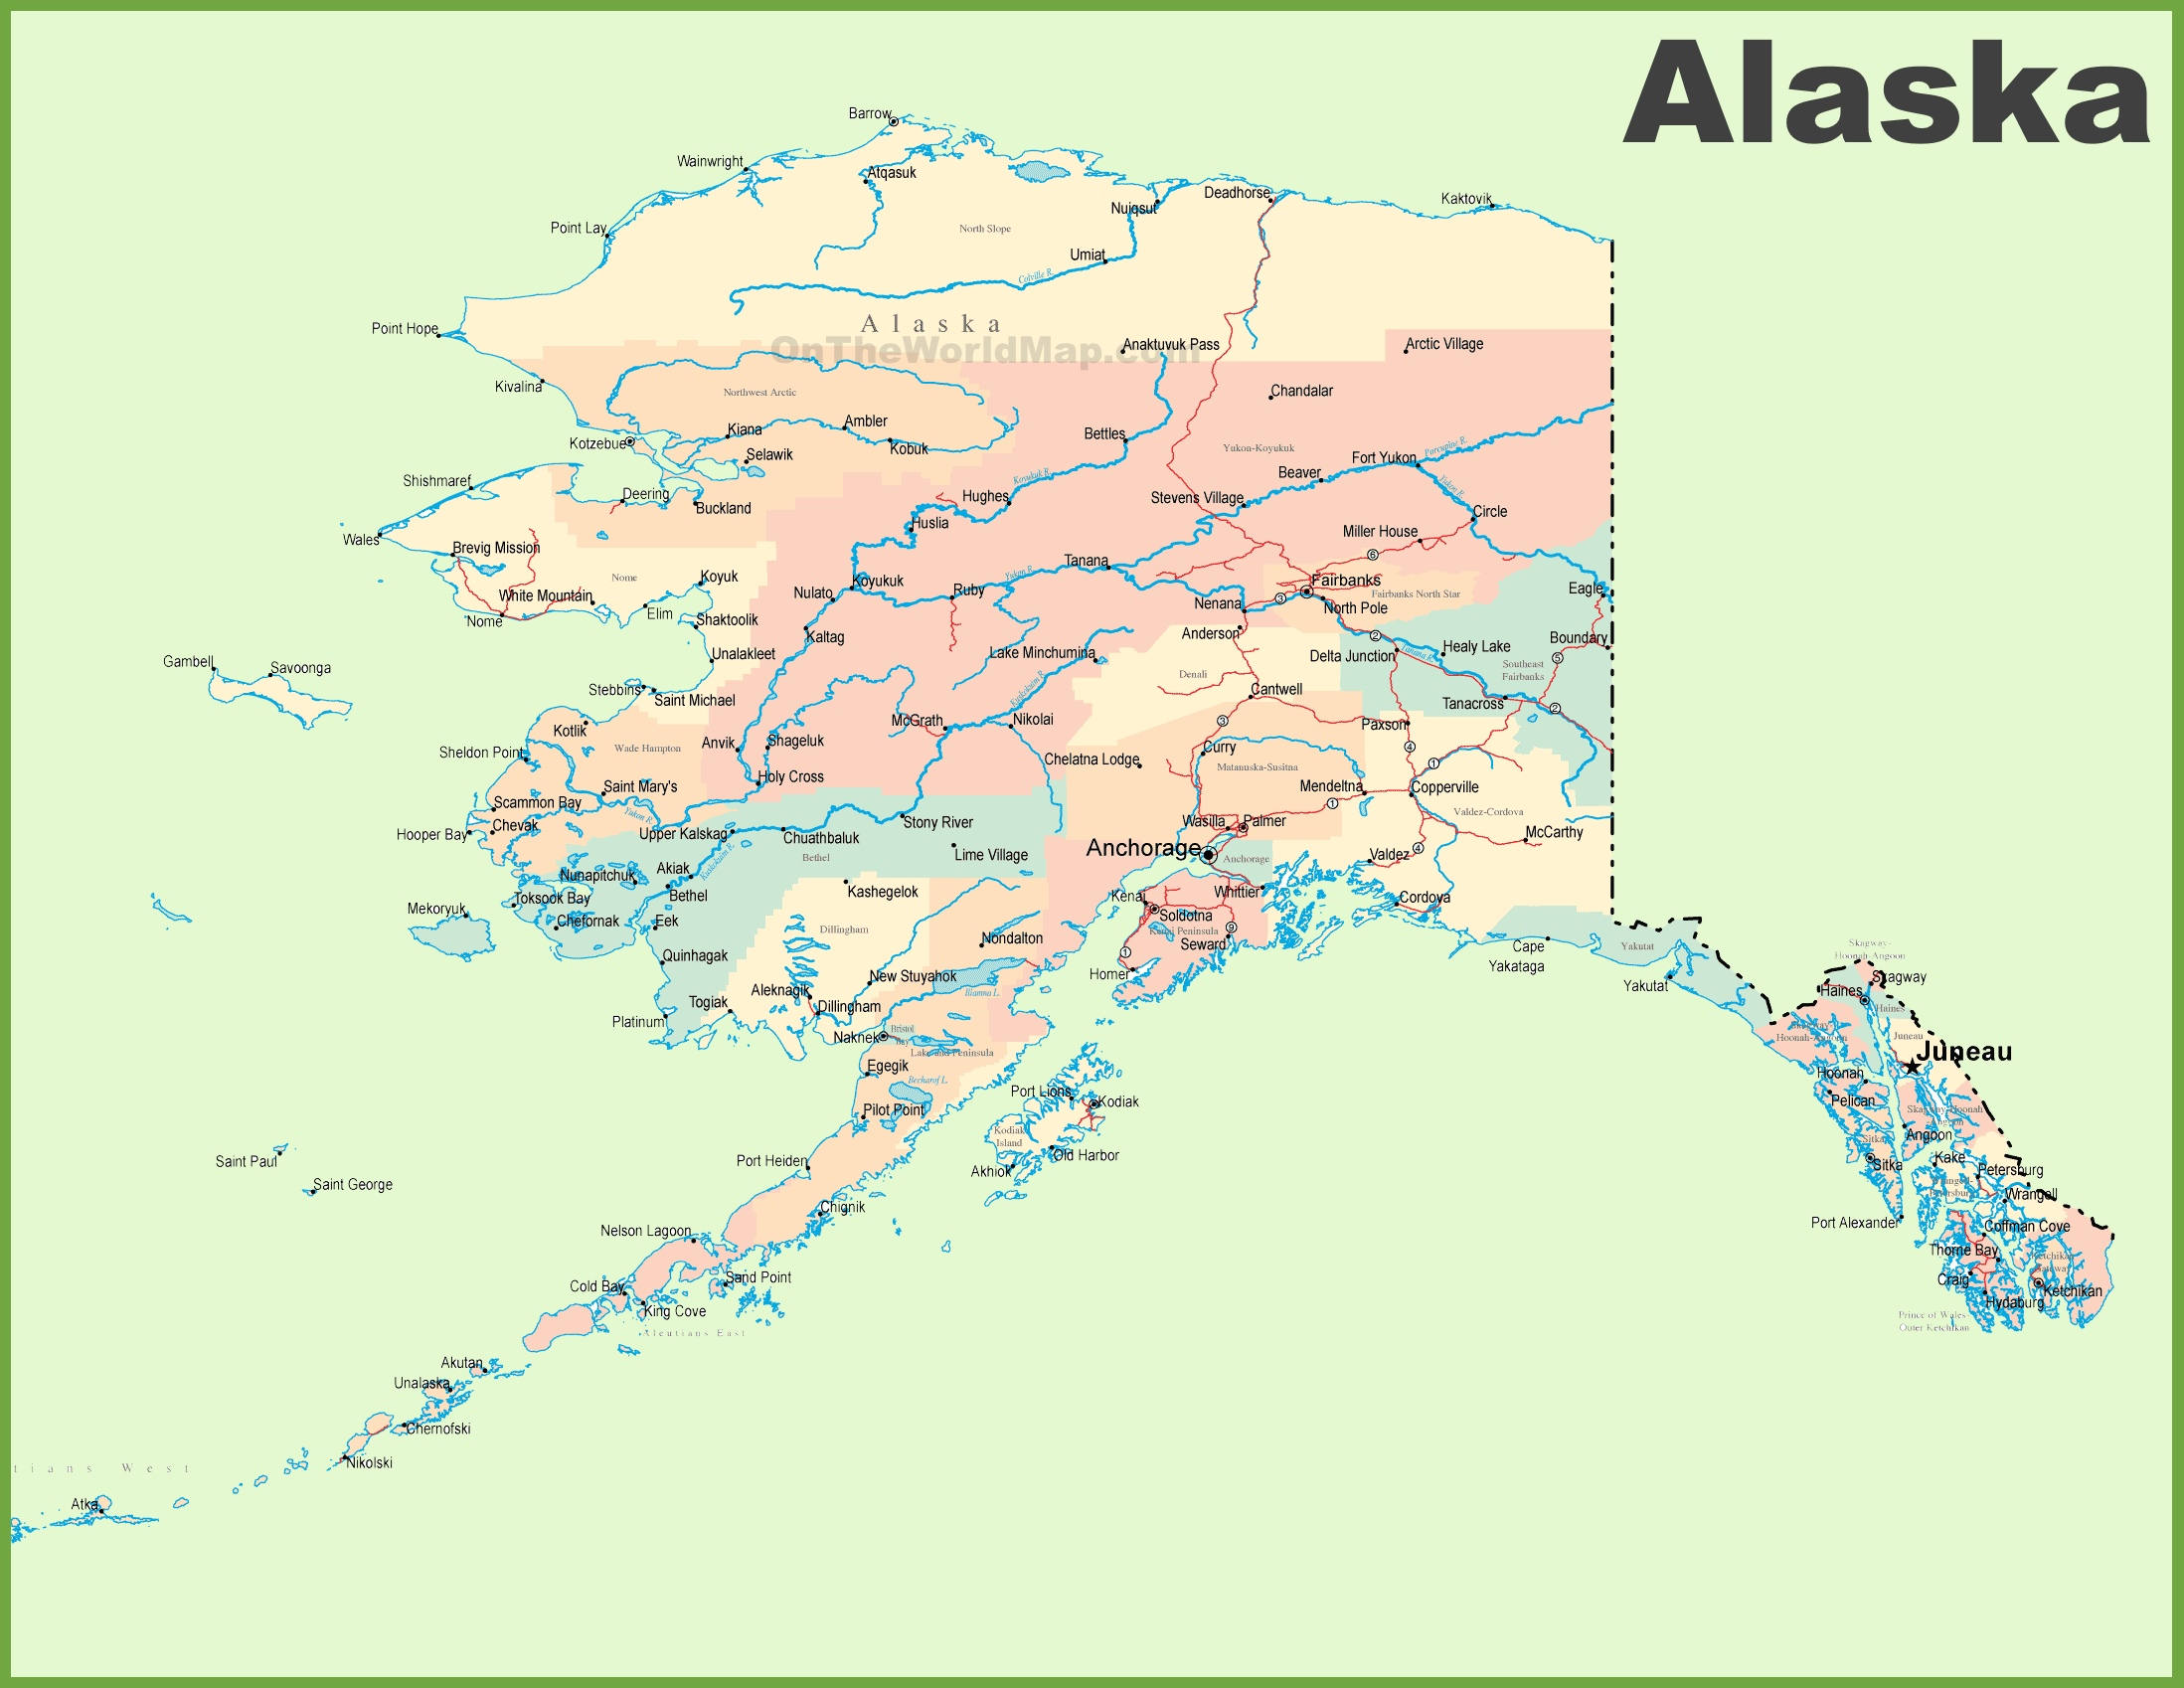 26 model Map With Alaska bnhspinecom